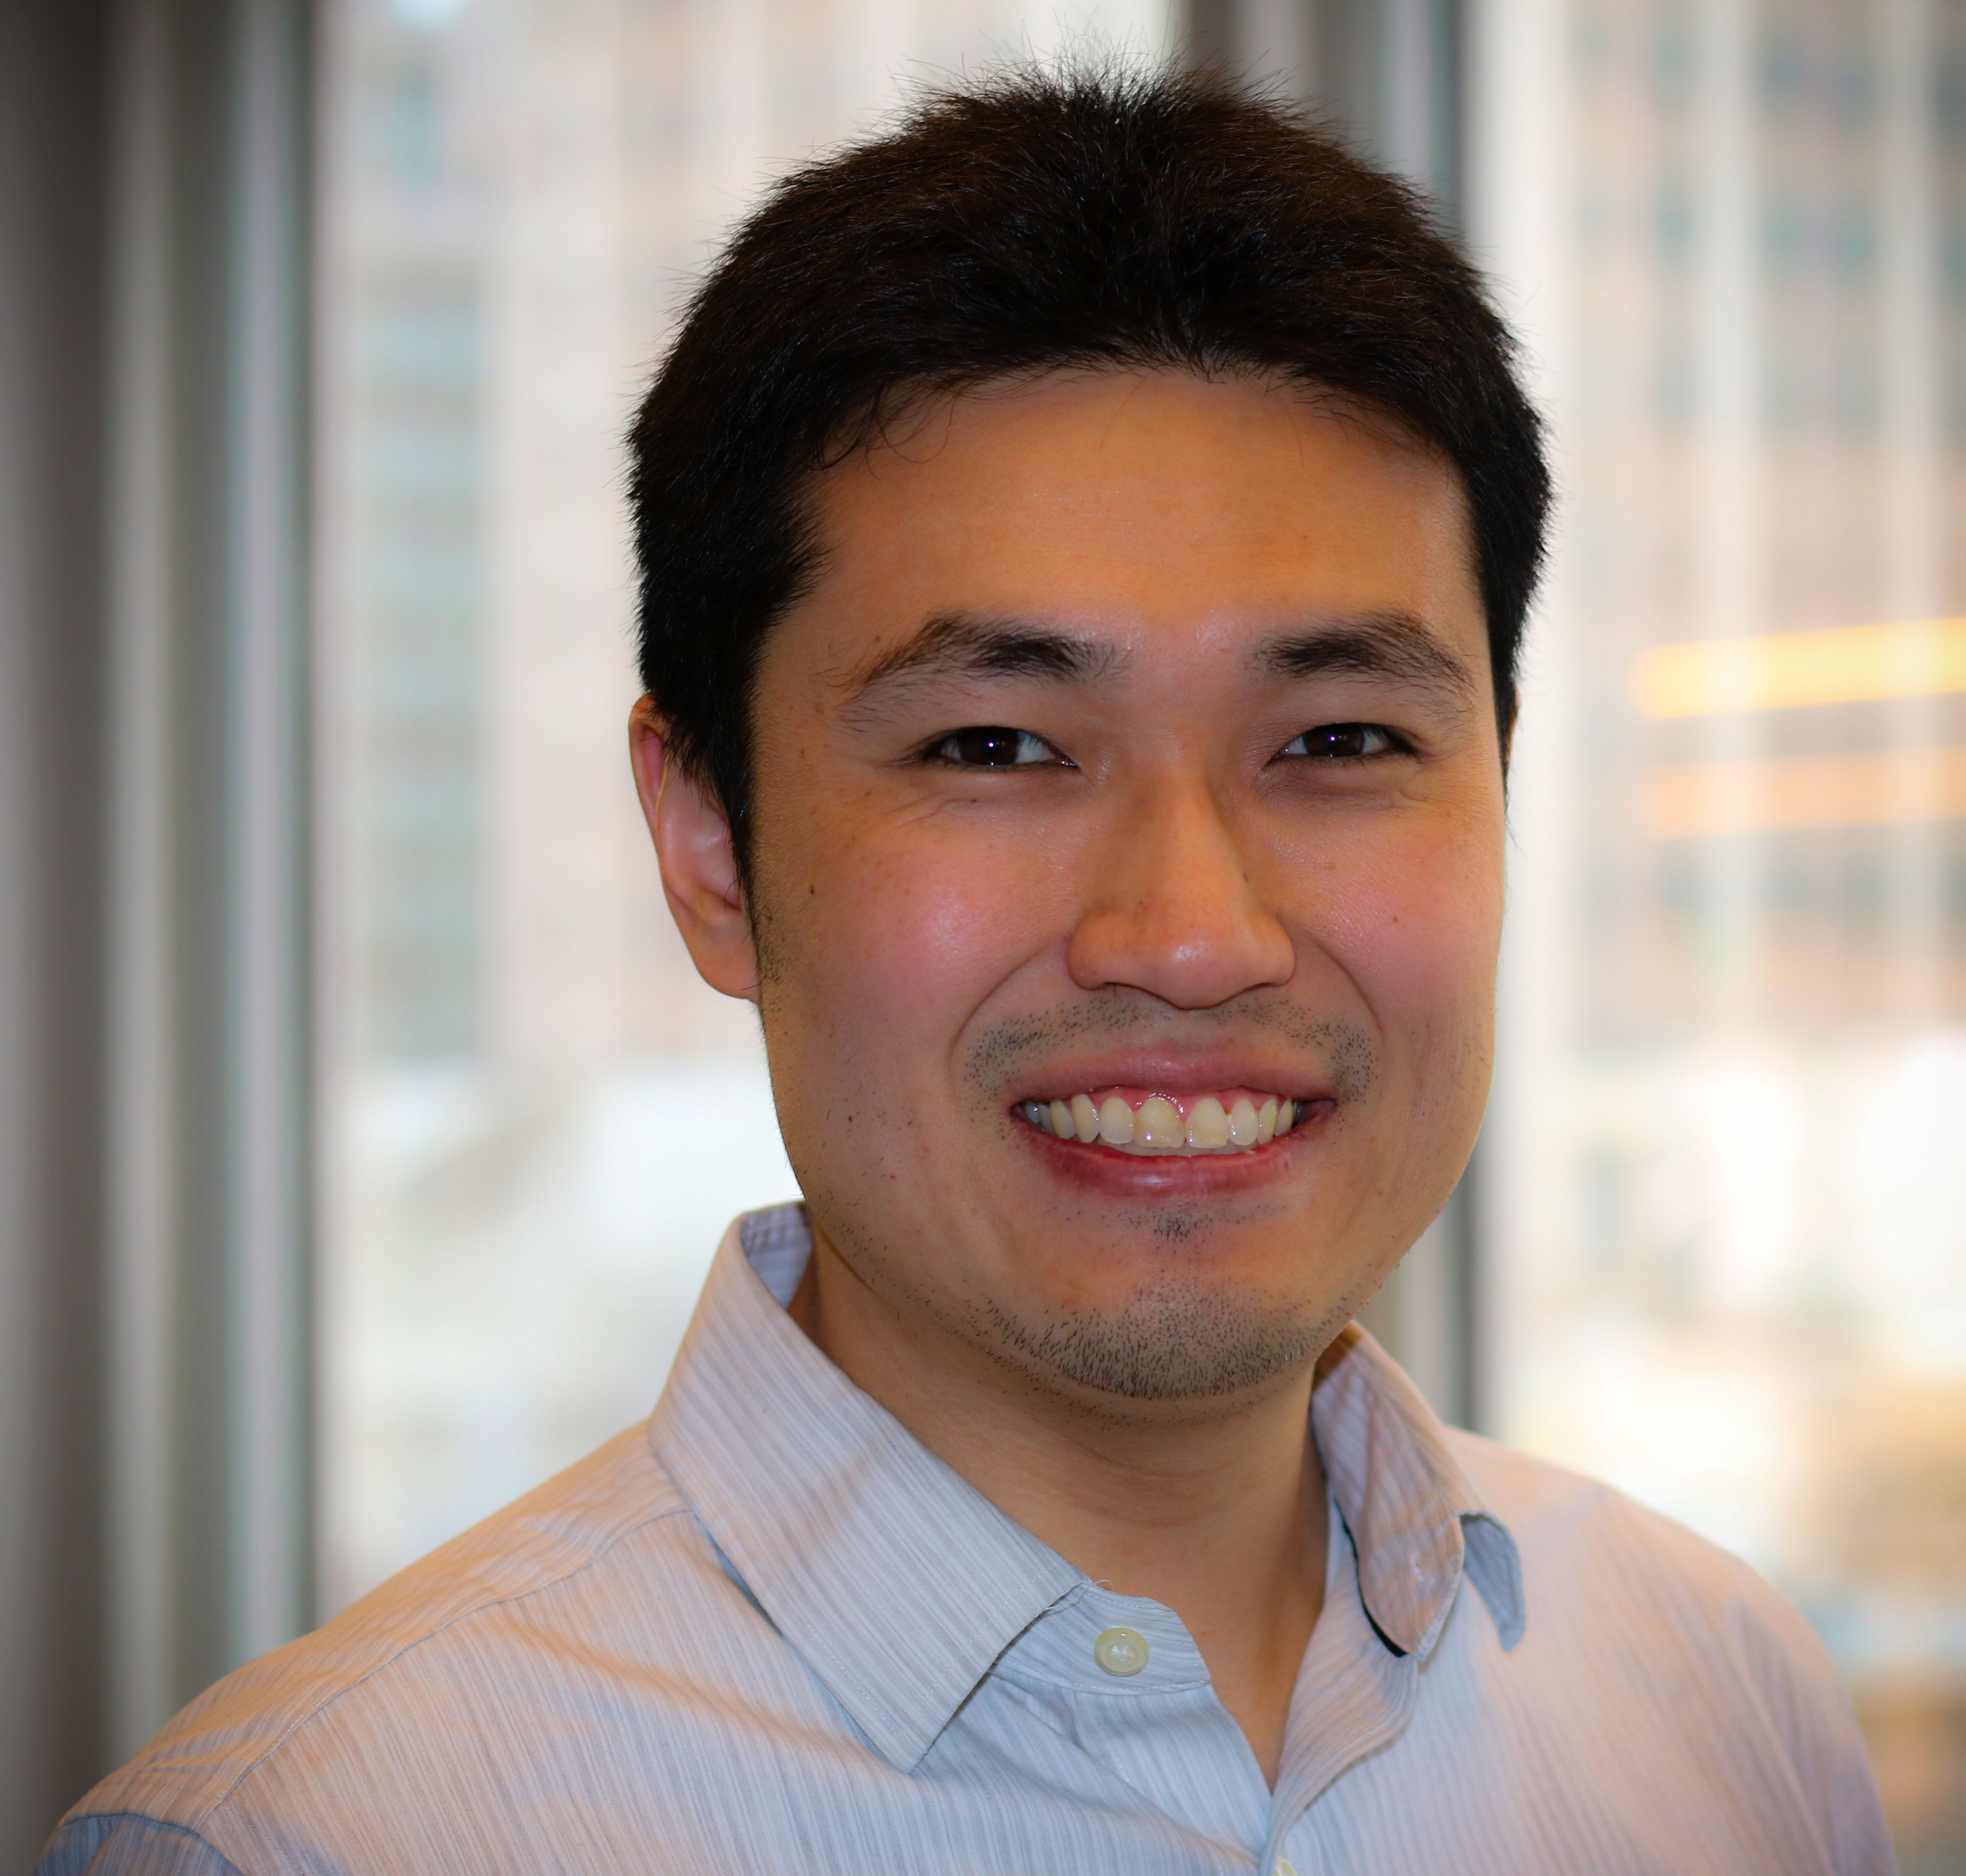 James Fang, Director of Product Marketing, Headshot